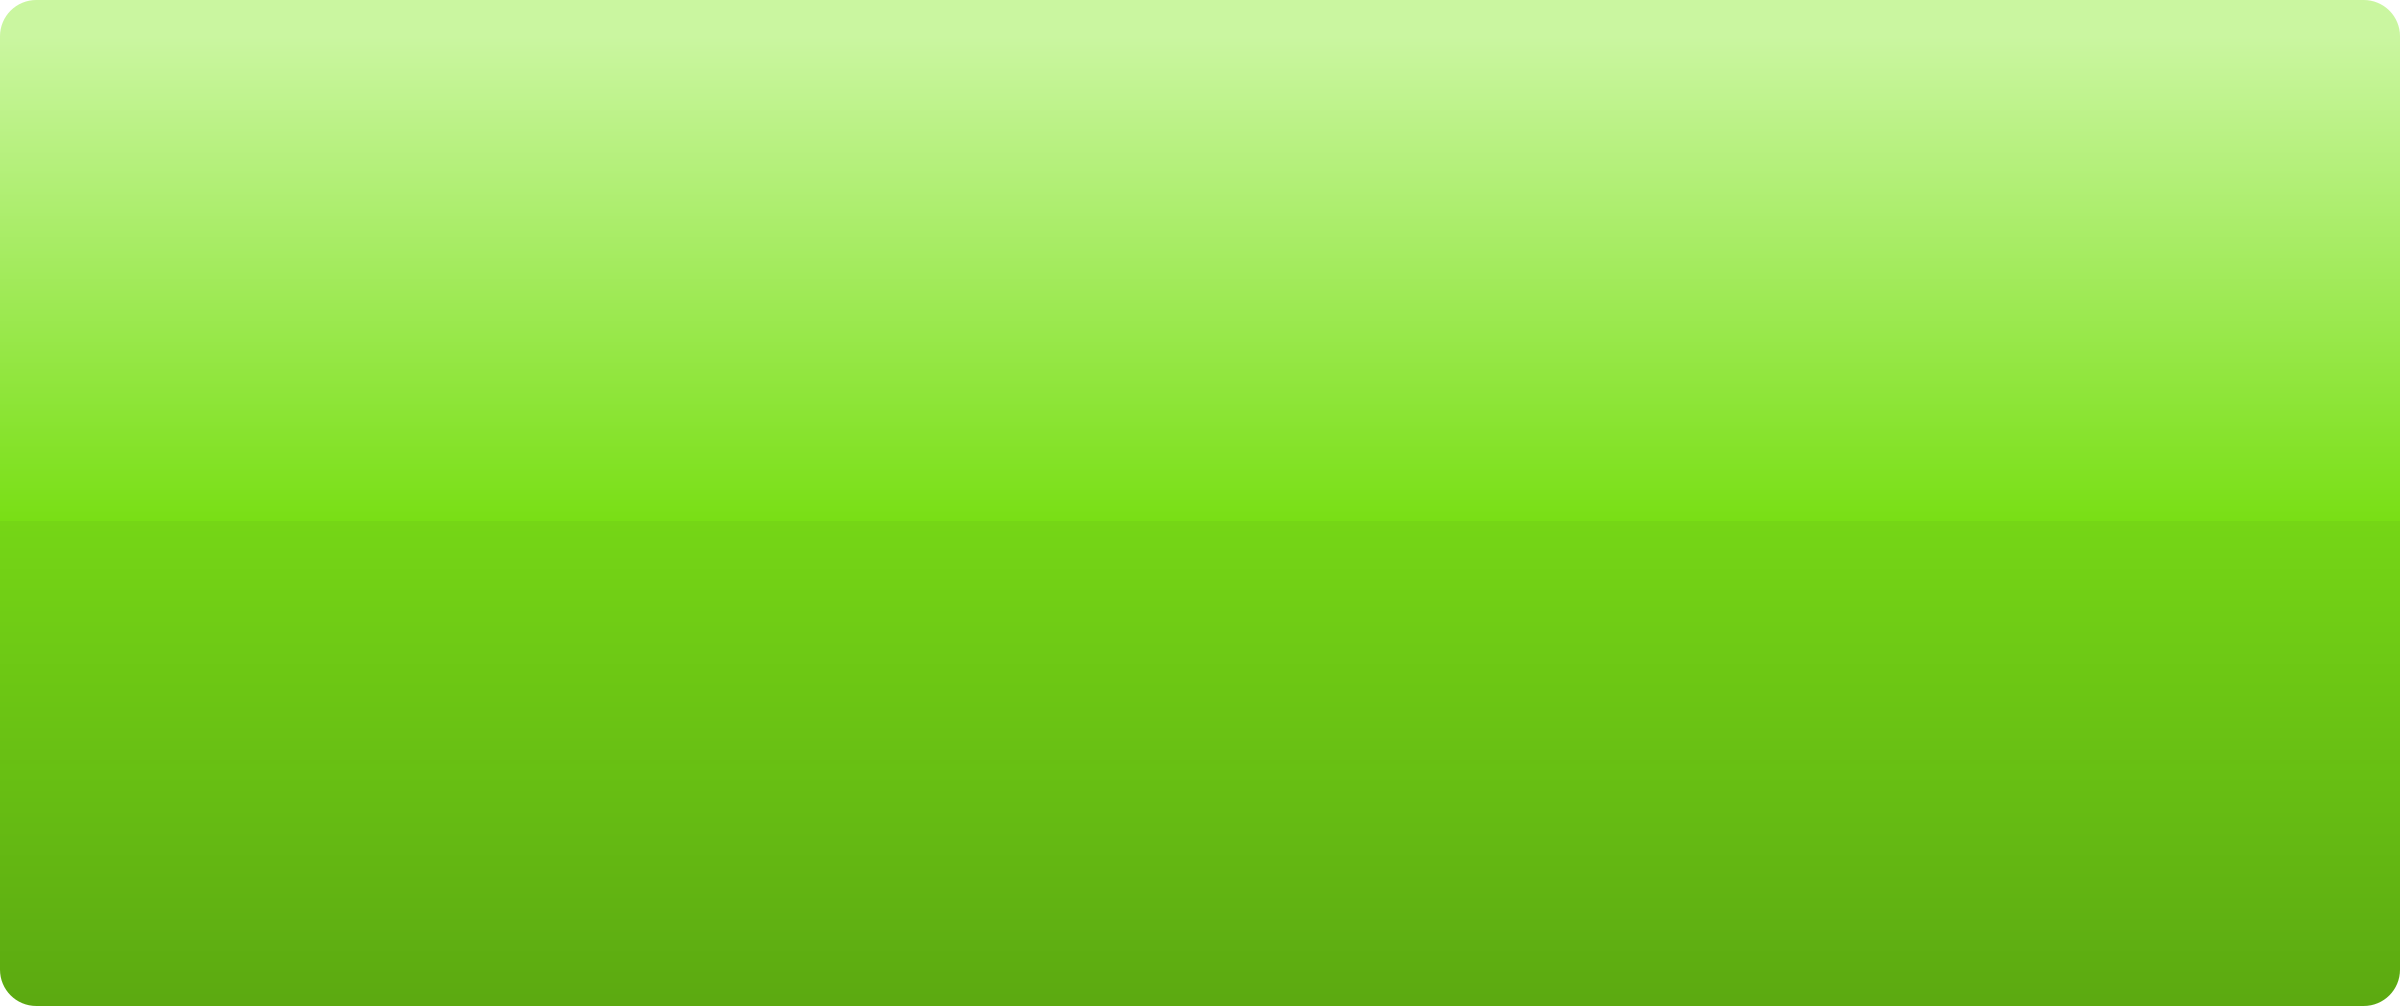 green glossy button (gradient based) by ryanlerch